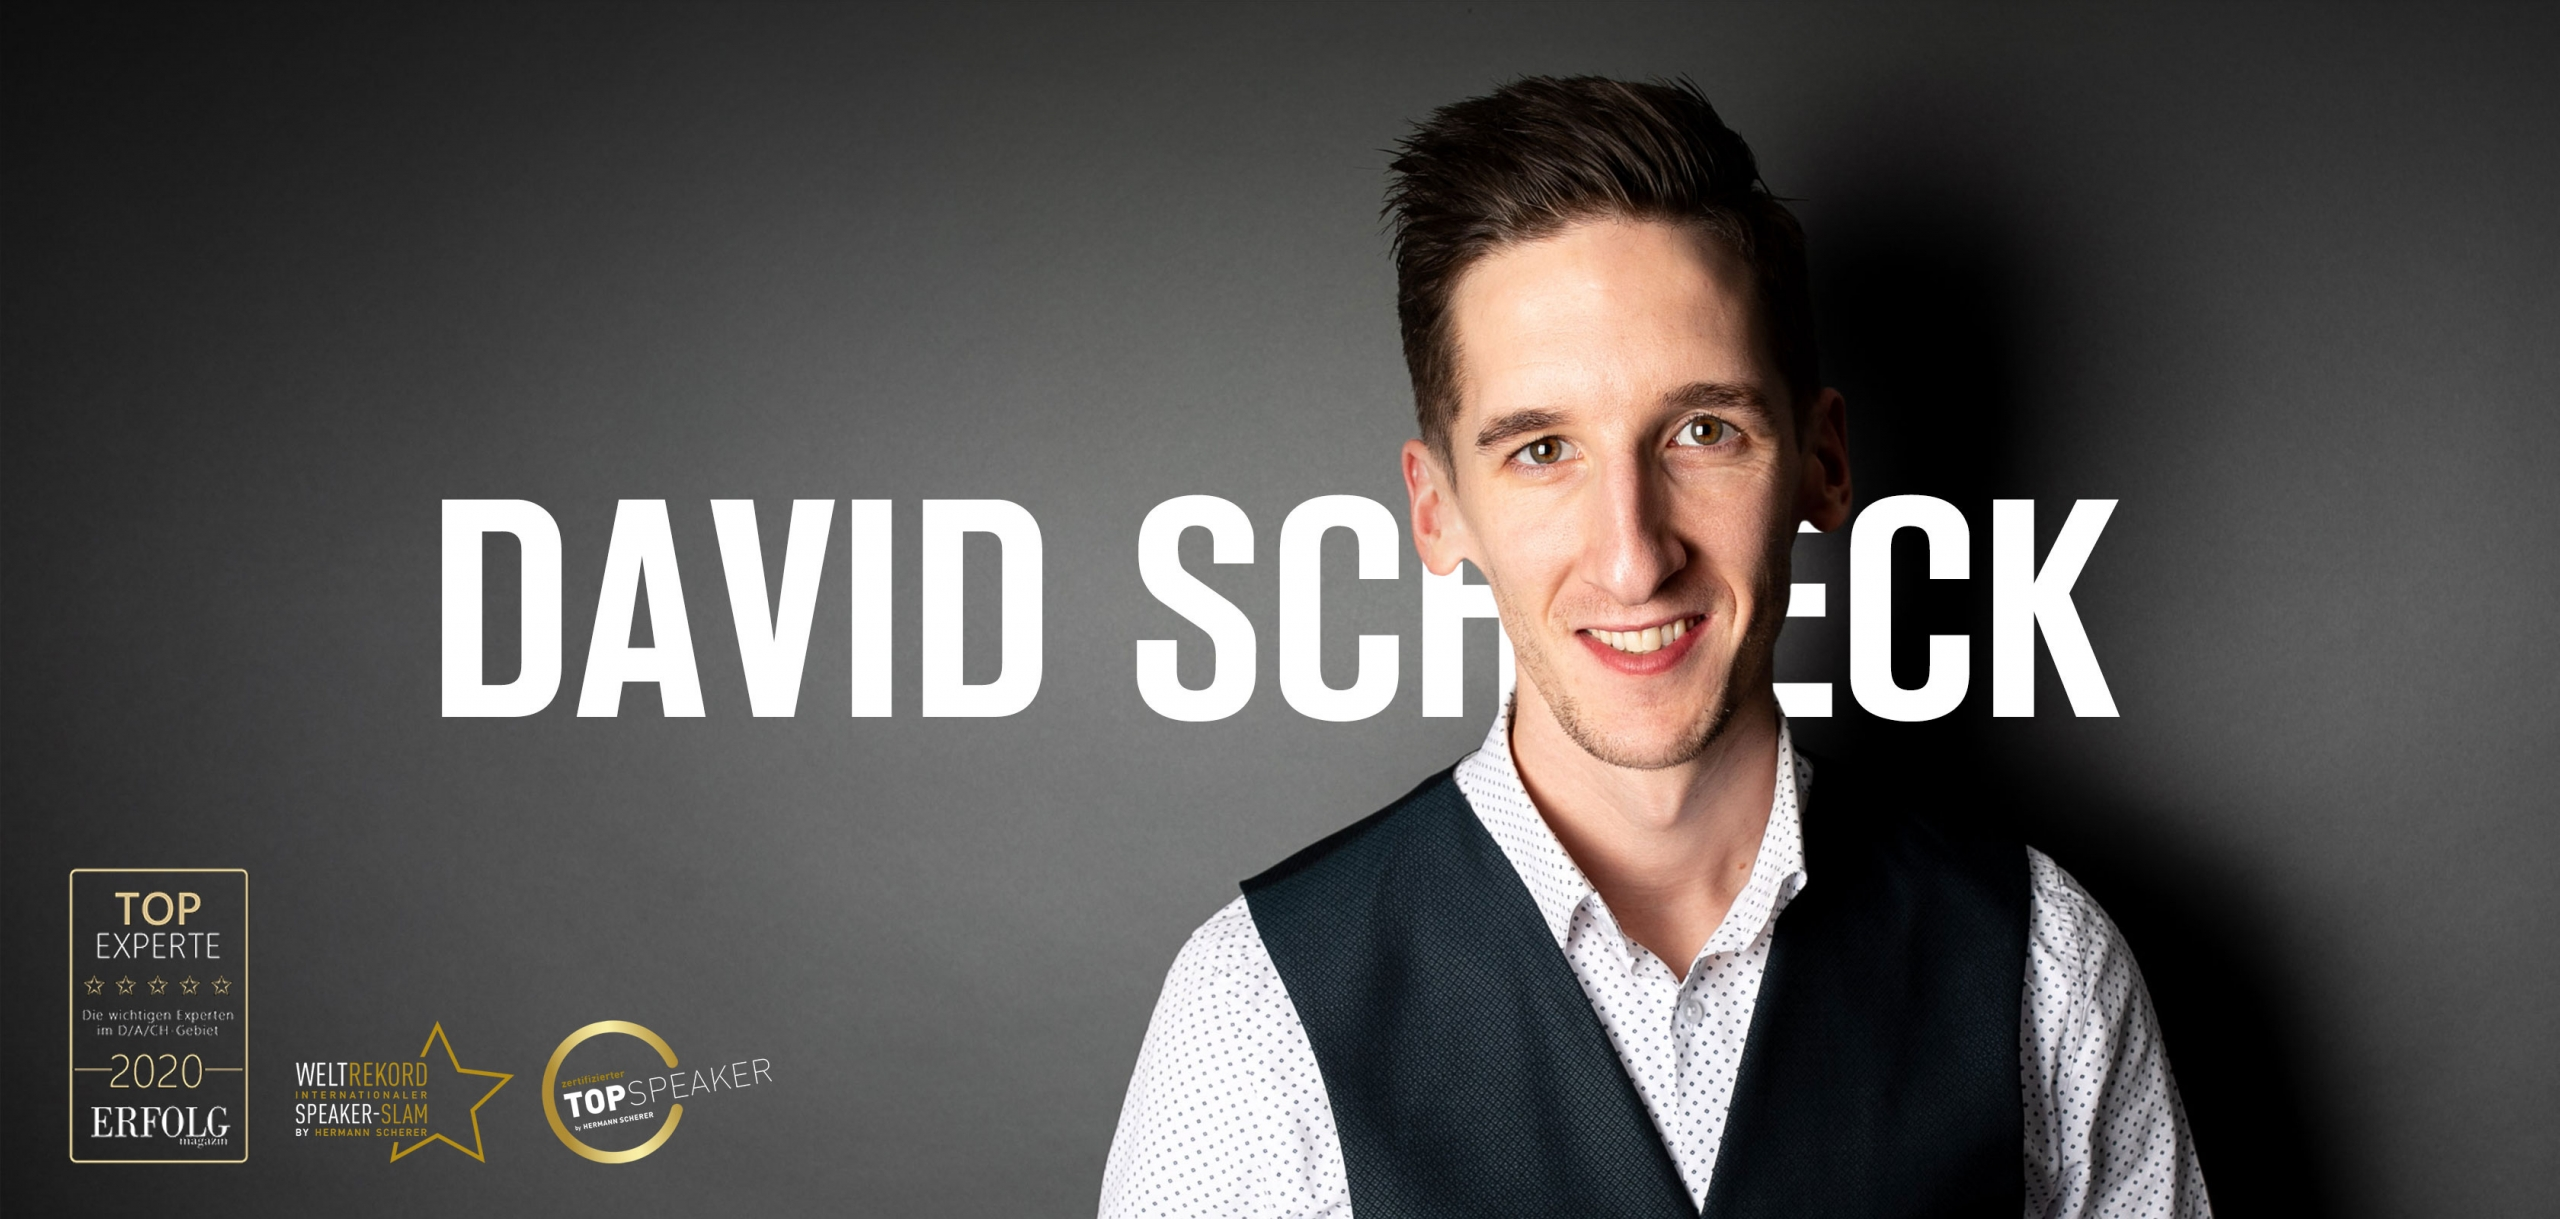 David Schneck - Dein Motivations-Speaker und Coach